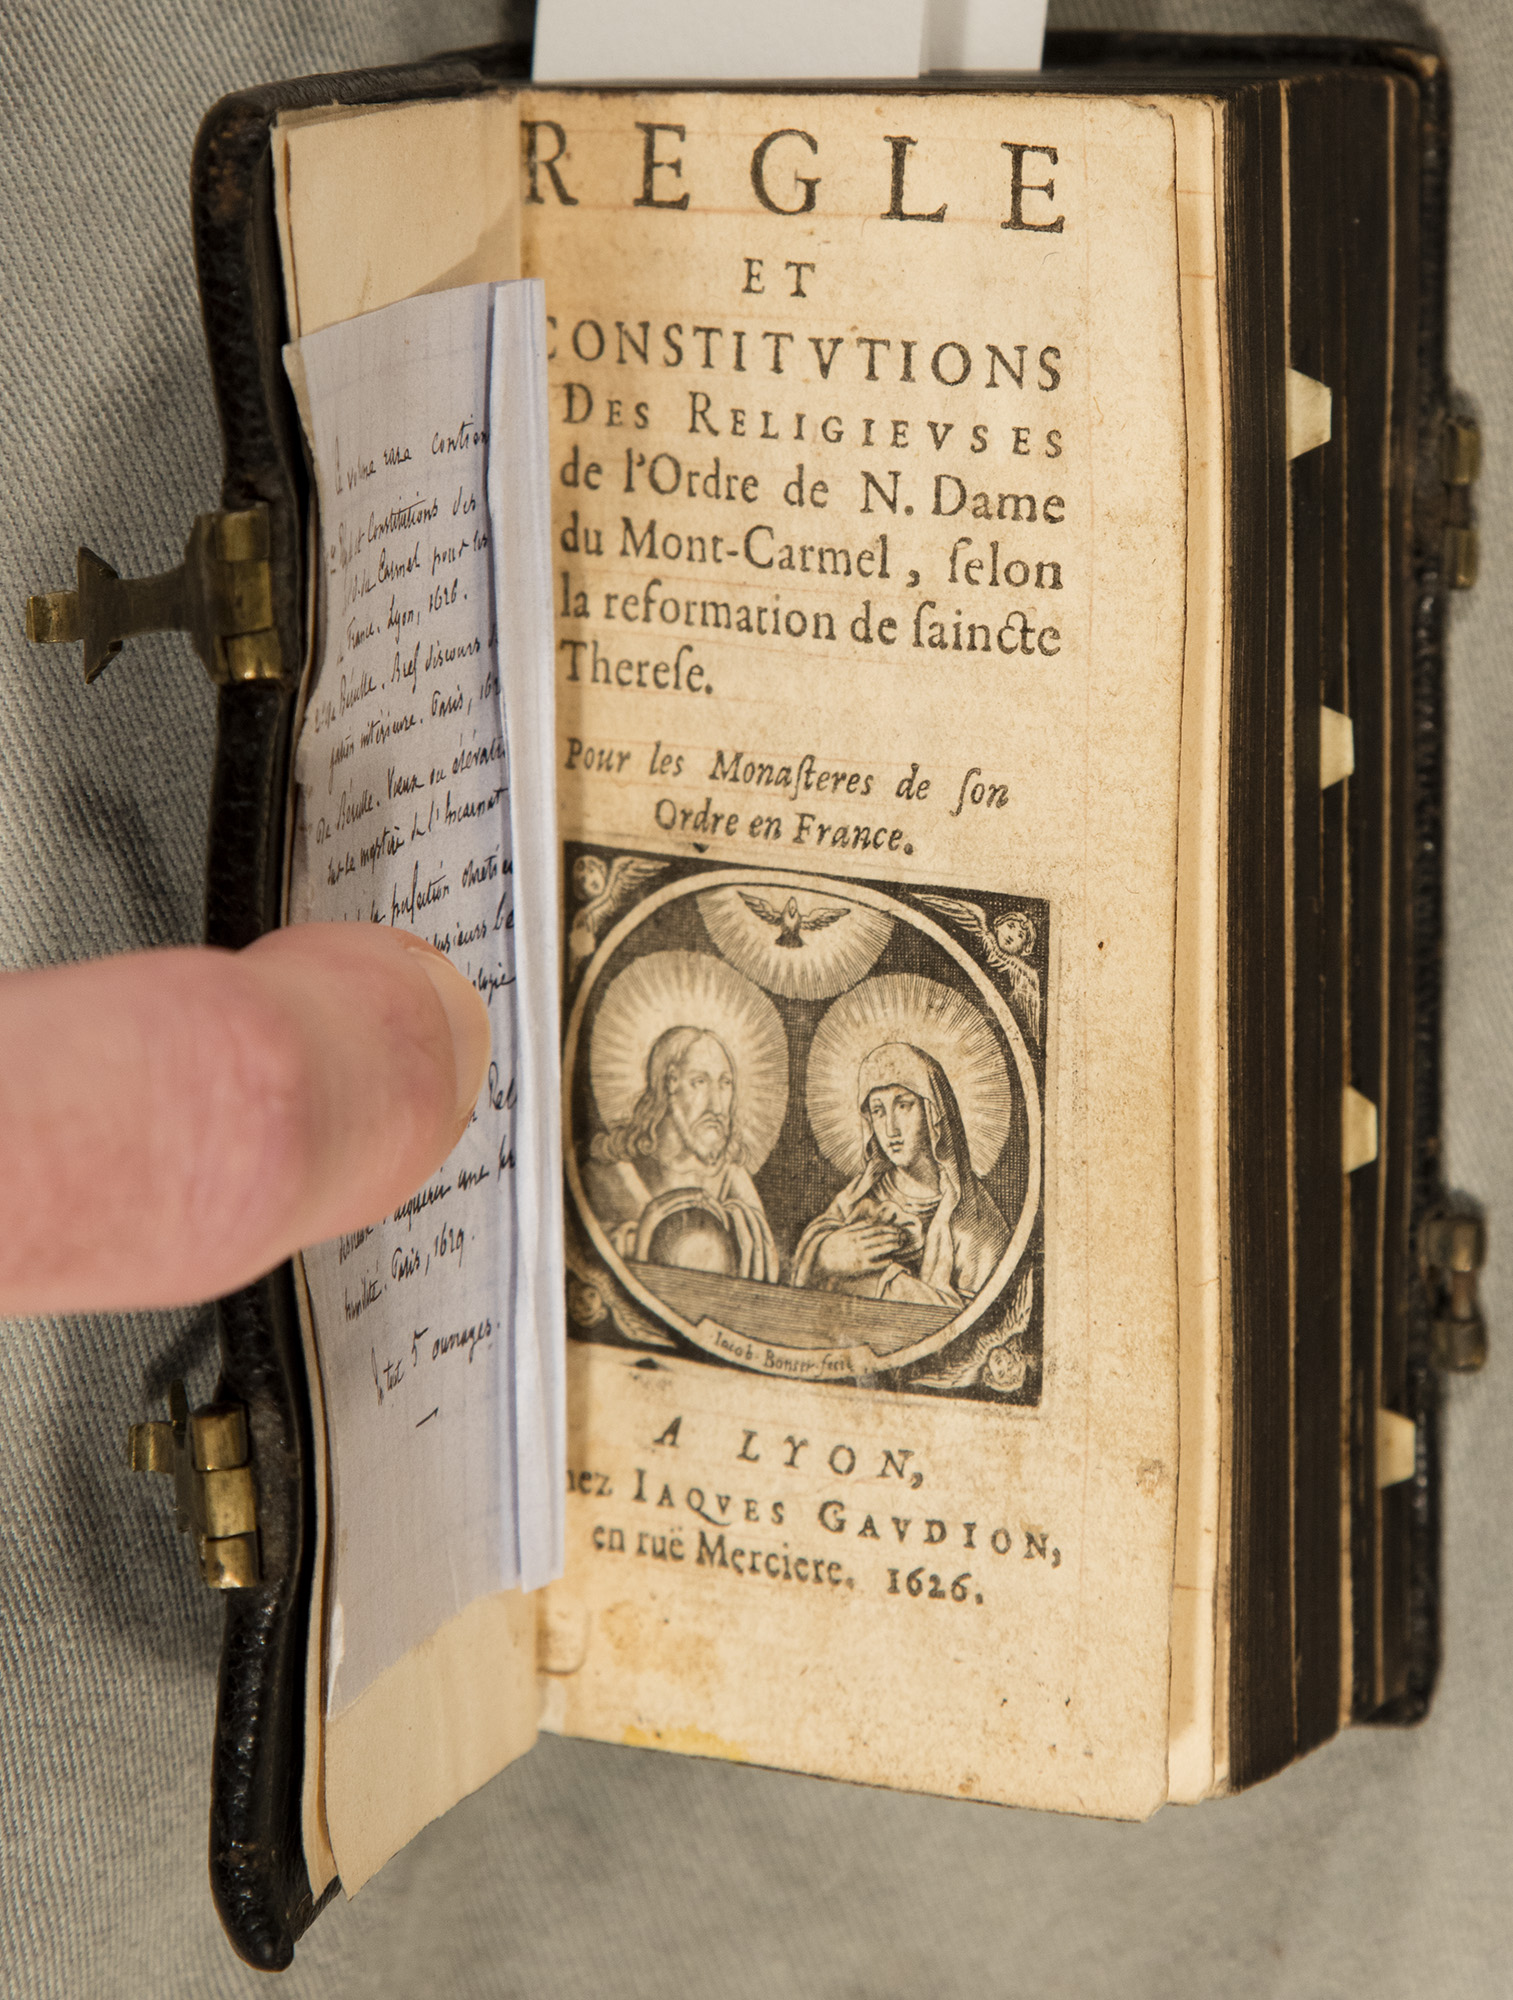 Image showing the title page of Regle et constitutions des Religieuses de l'Ordre de N. Dame du Mont-Carmel, selon la reformation de Saincte Therese: pour les monasteres de son ordre en France, 1626. There is a woodcut of two nuns in prayer.